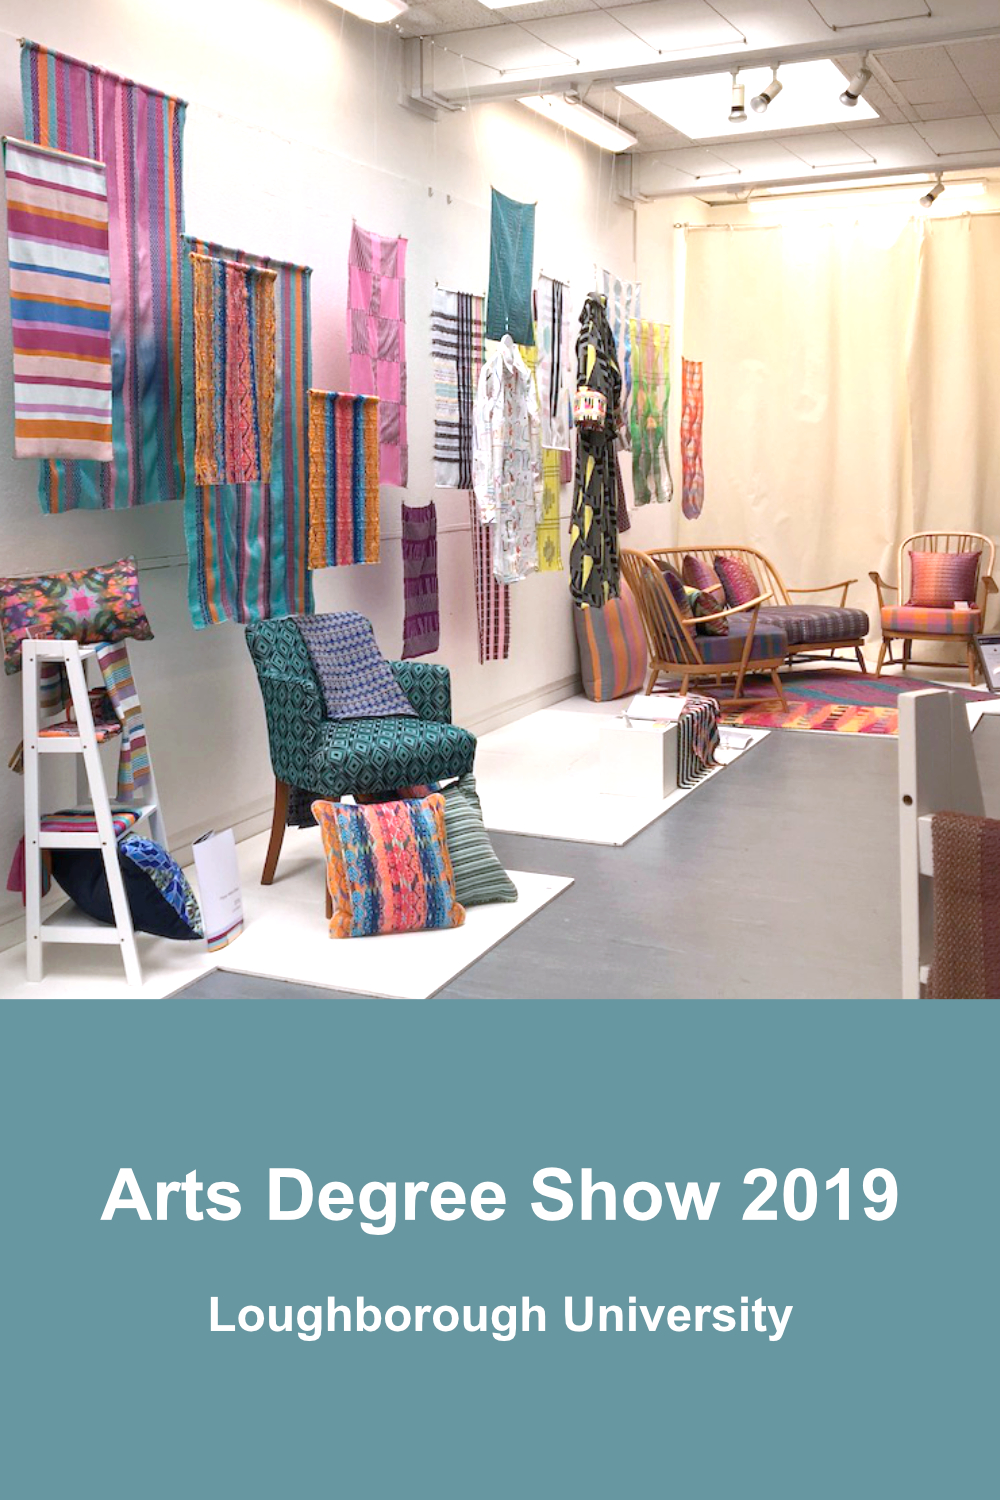 Students' work at the Arts Degree Show, Loughborough University 2019